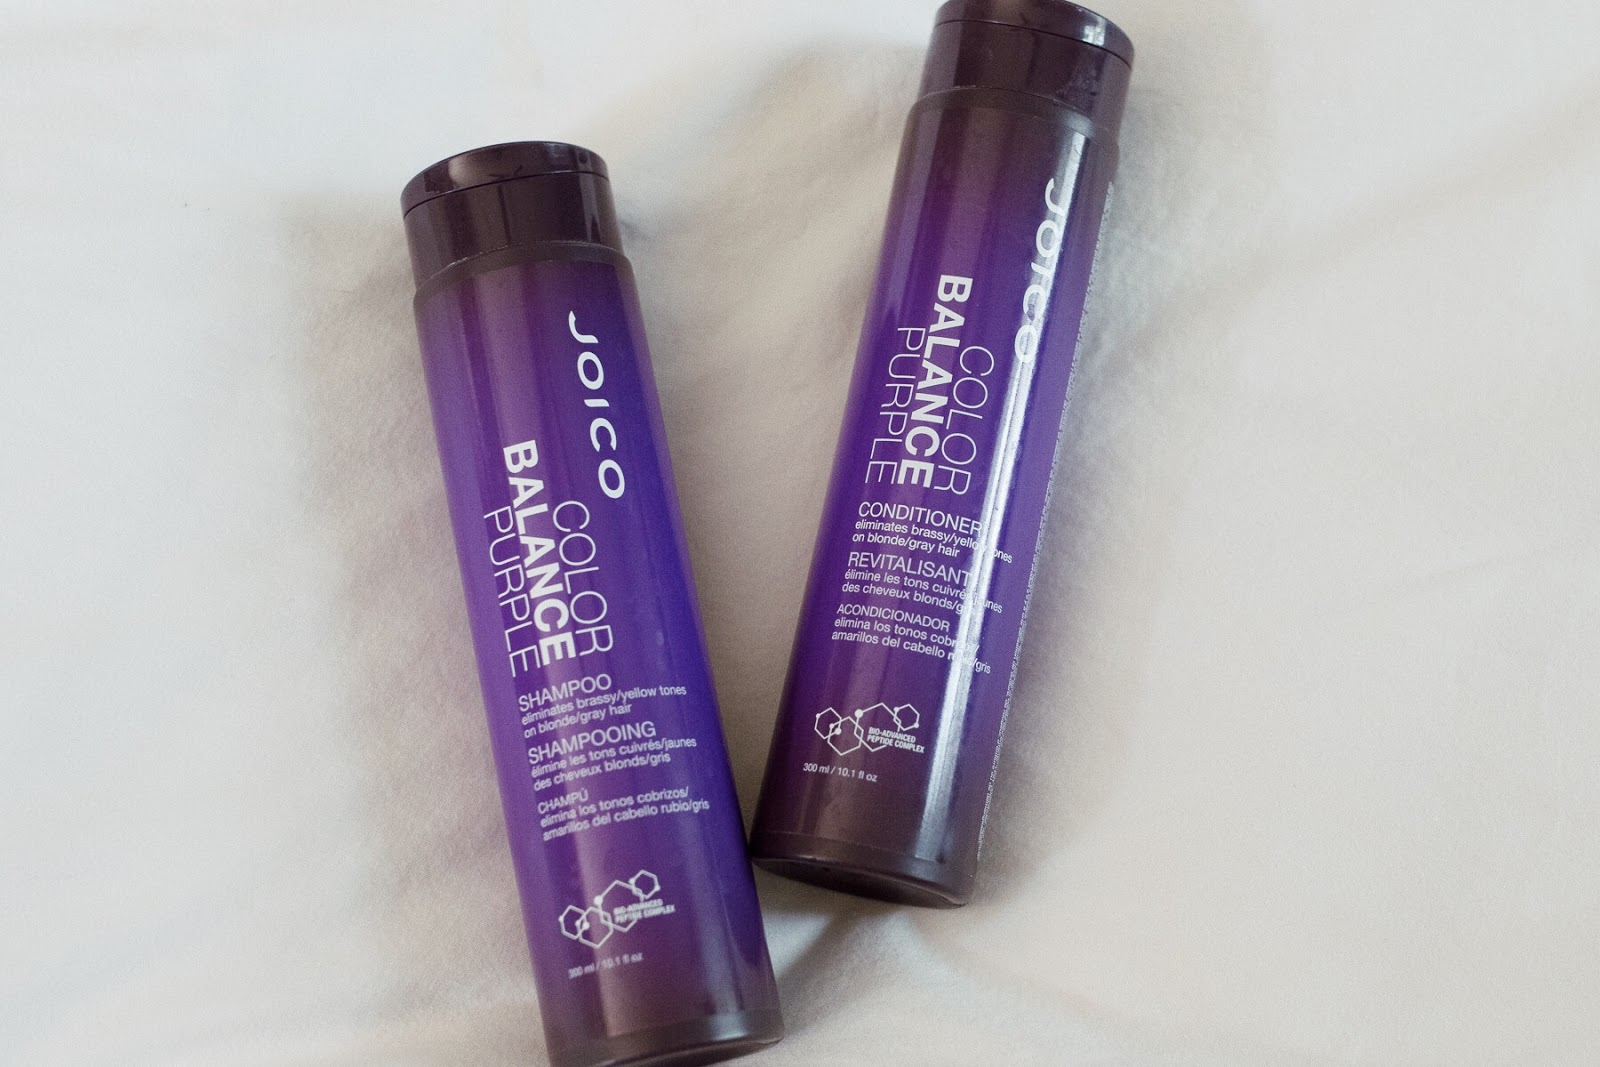 Joico purple shampoo & conditioner - great for toning blonde hair